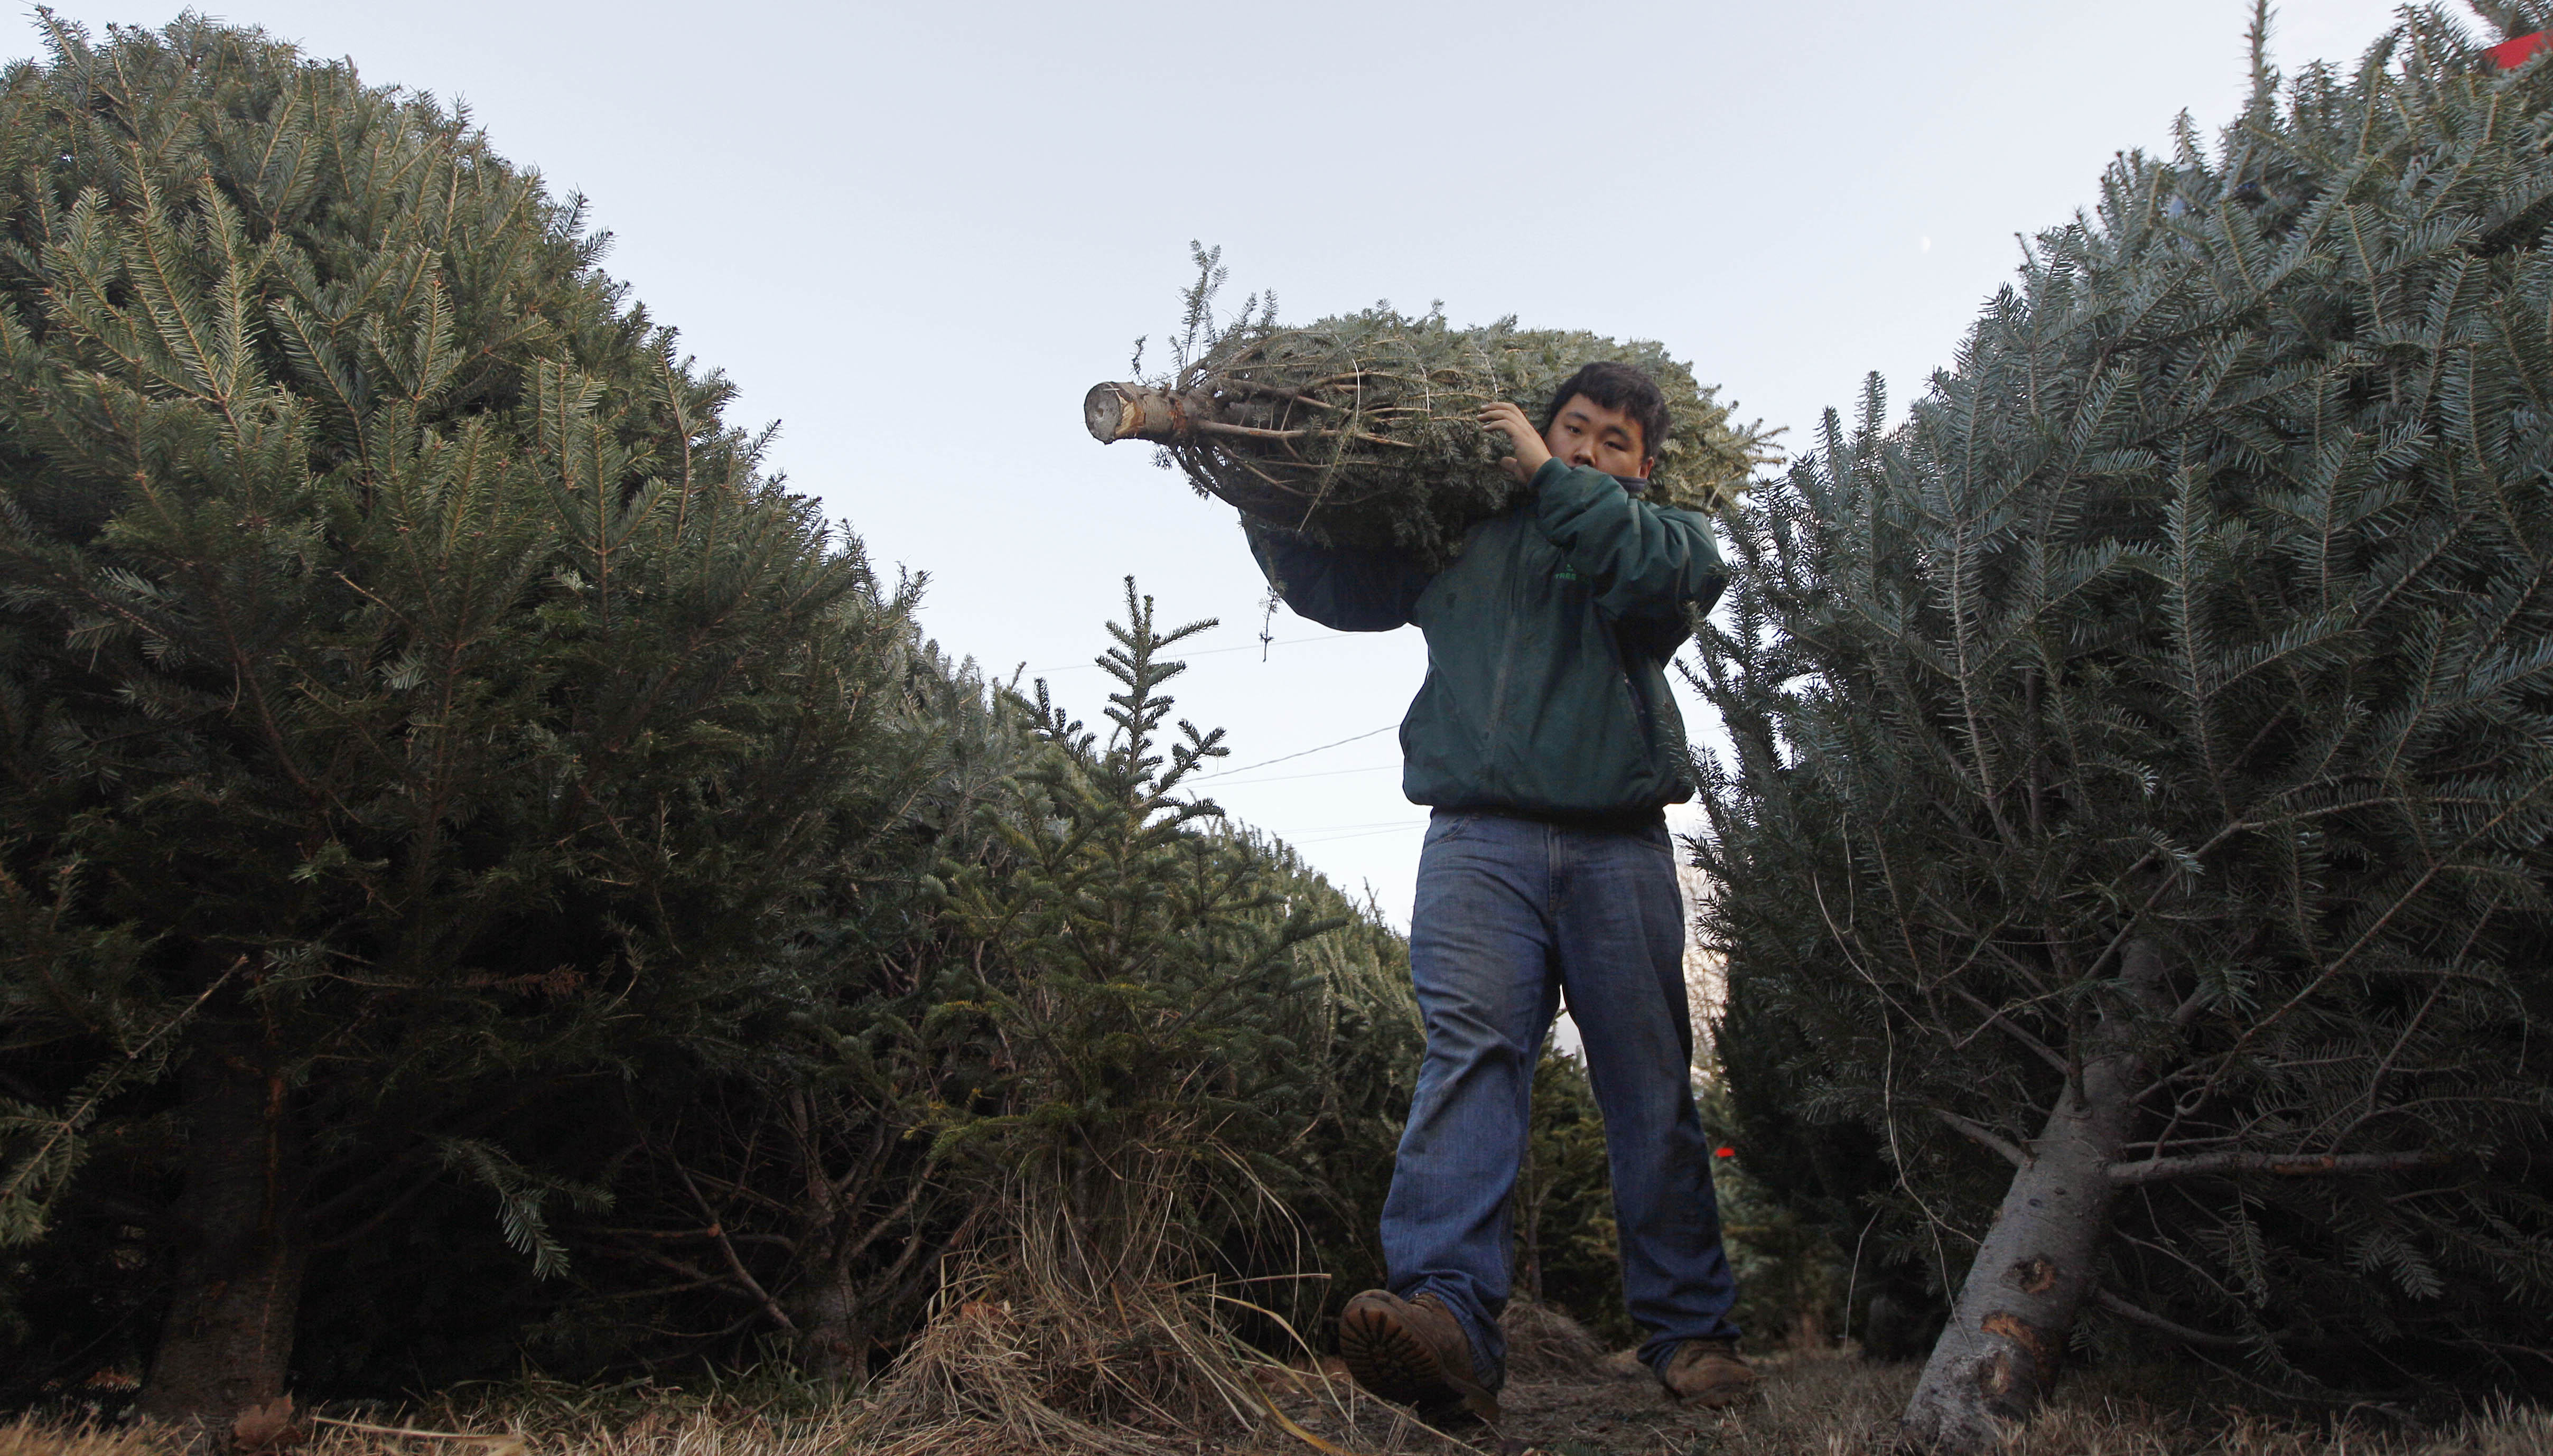 Christmas Tree Farm Photos.How Extreme Weather May Influence Your Christmas Tree